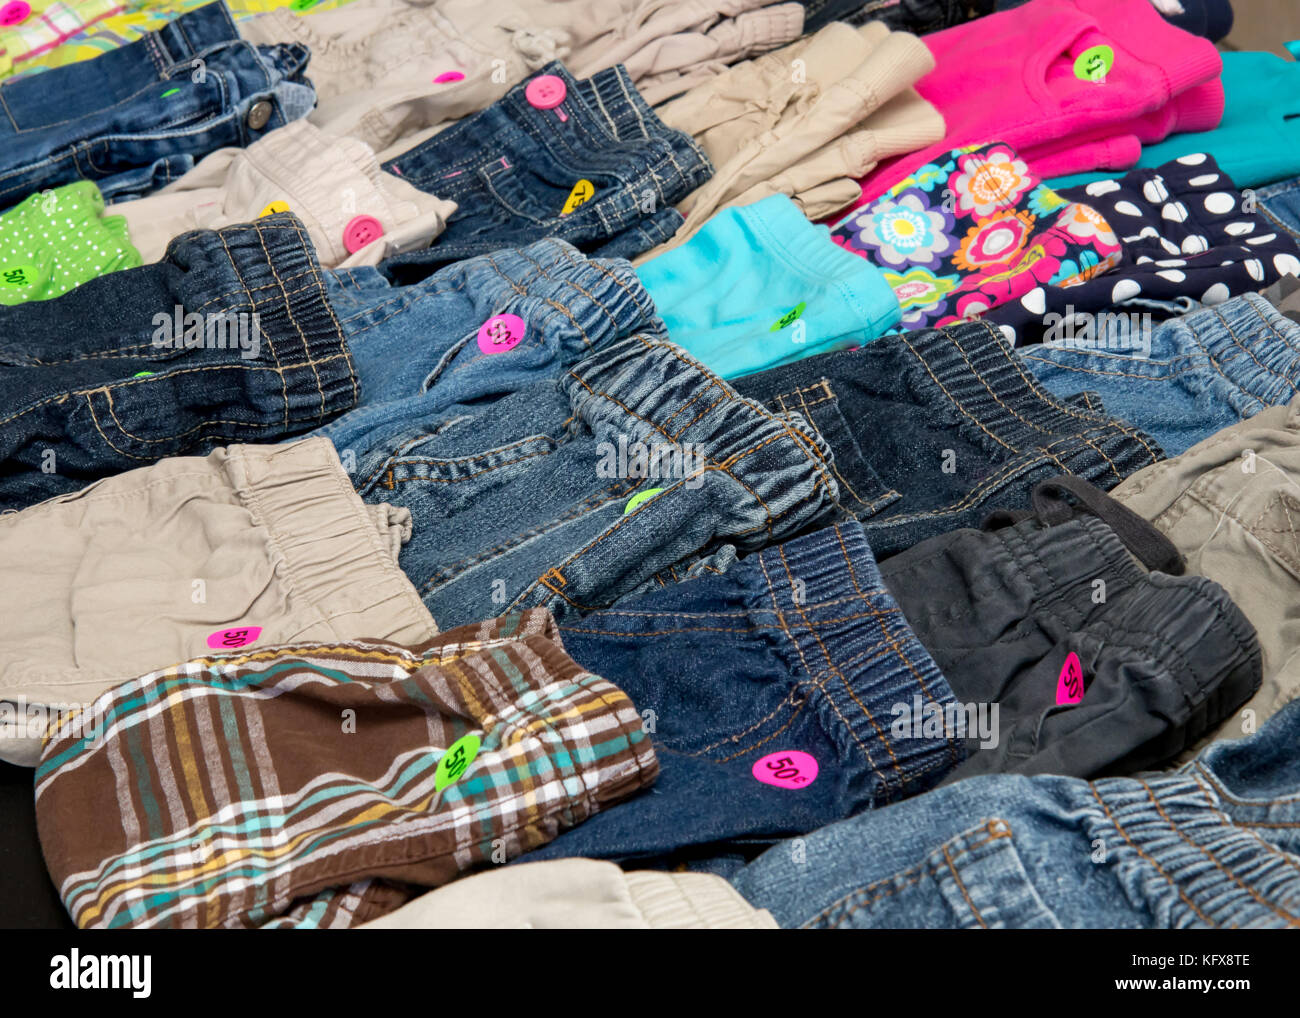 Children`s pants on display at a suburban garage sale - Stock Image